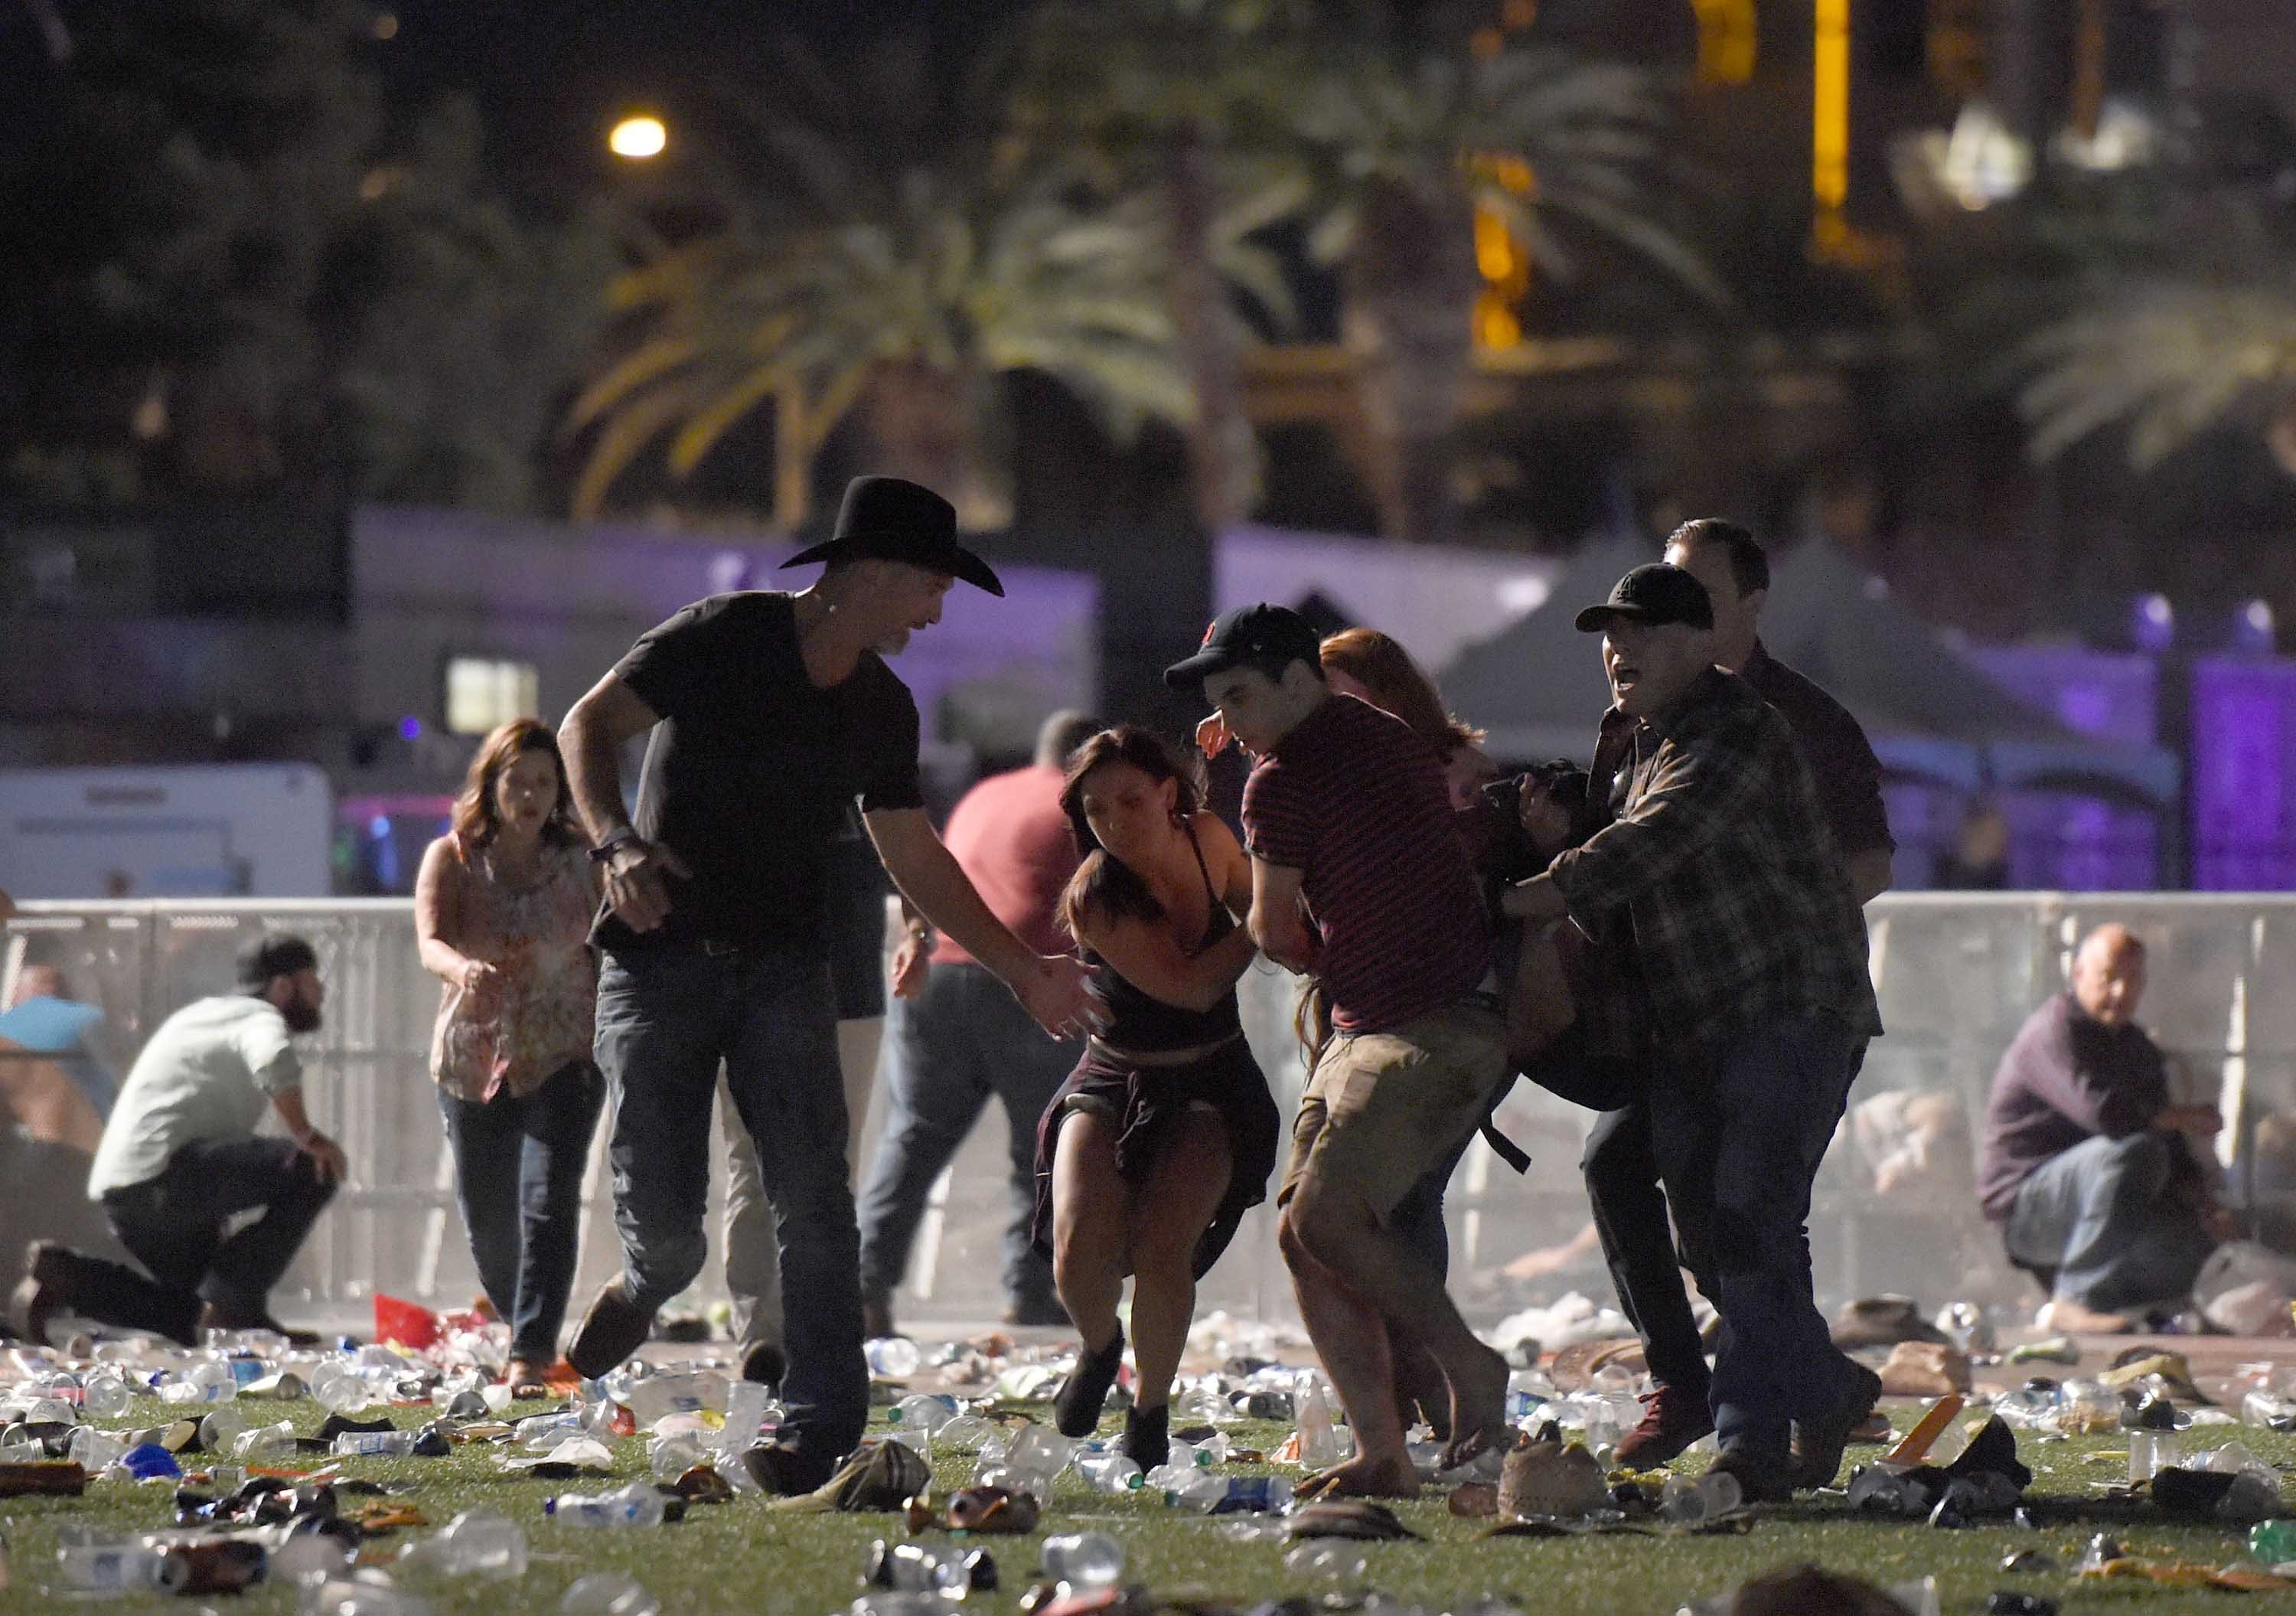 Las Vegas massacre: stricter controls do not follow mass shootings